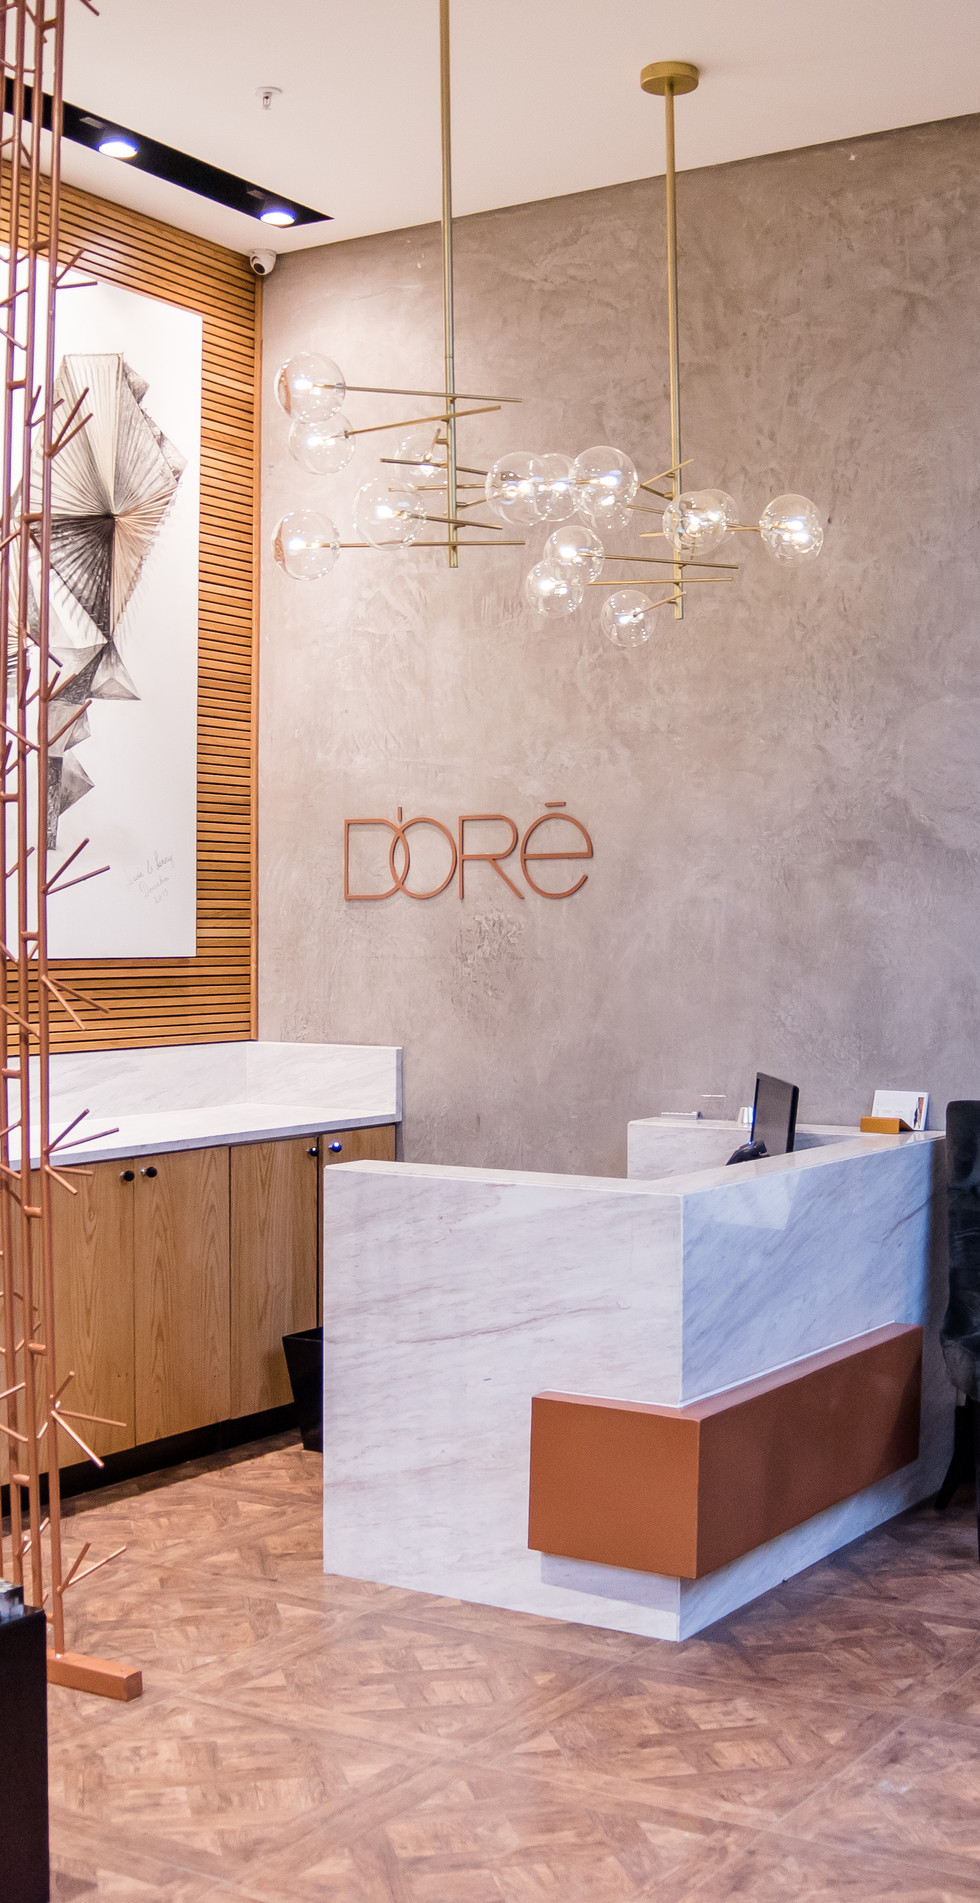 This iconic store with a fashion heritage spanning over 45 years, has re-opened its flagship store in a new location in Sandton City.  D'Oré has also unveiled a wide range of both international and local luxury brands which are sold exclusively in store.